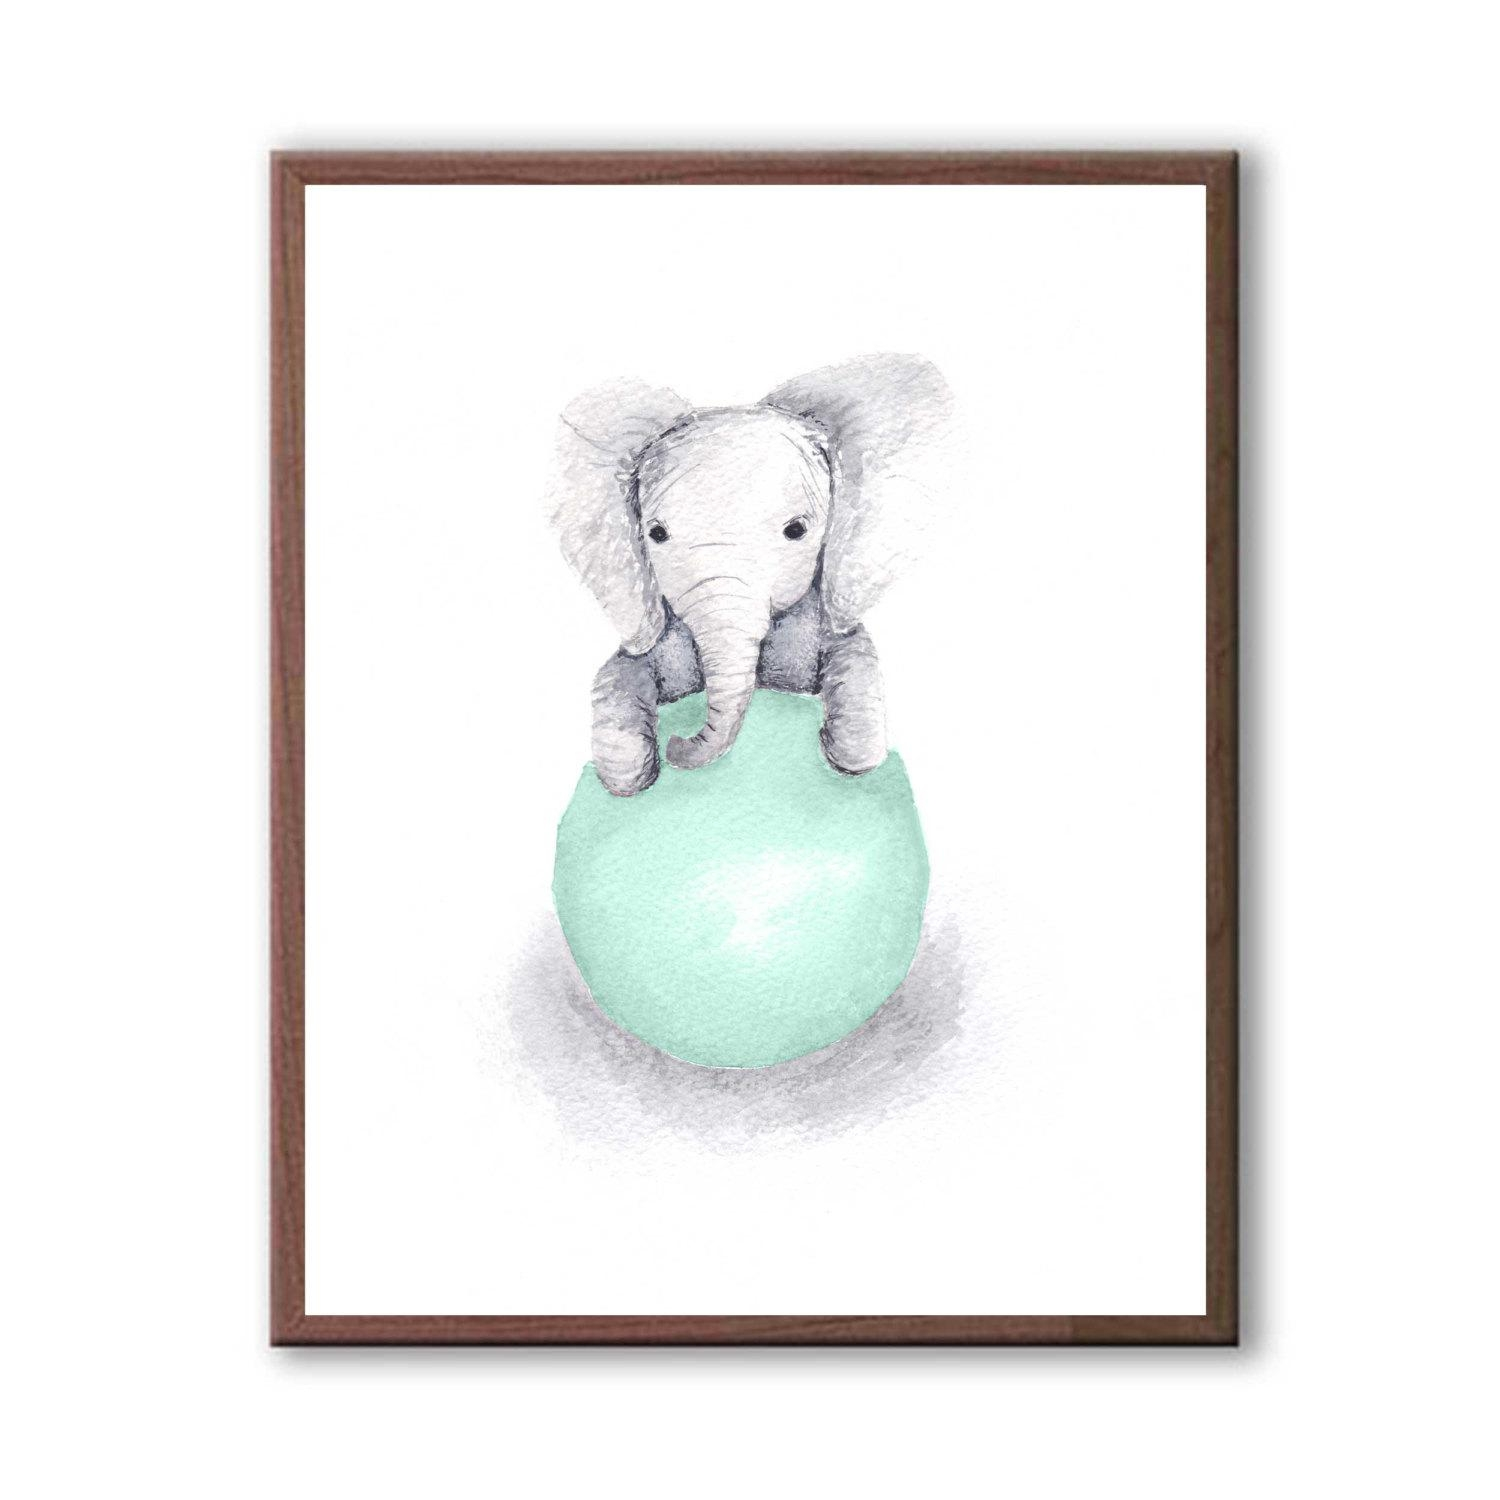 Elephant Wall Decor Baby Decor Art For Children Kids Room With Regard To Etsy Childrens Wall Art (View 17 of 20)